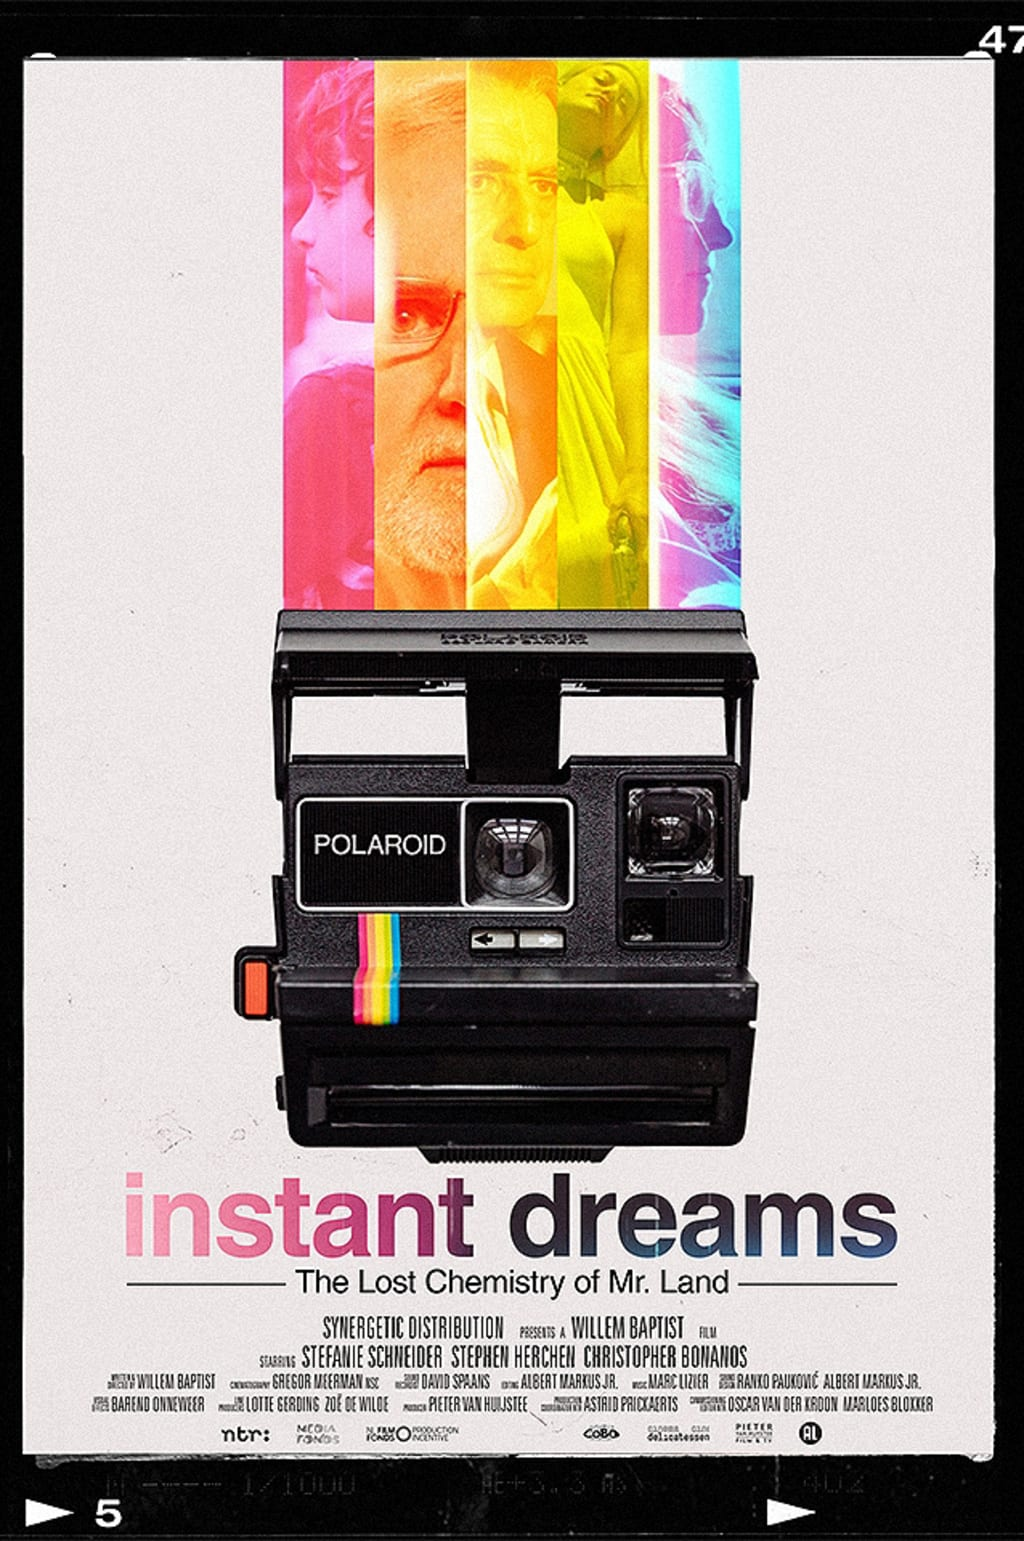 Movie Review: 'Instant Dreams' Mourning the Polaroid in the Digital Now